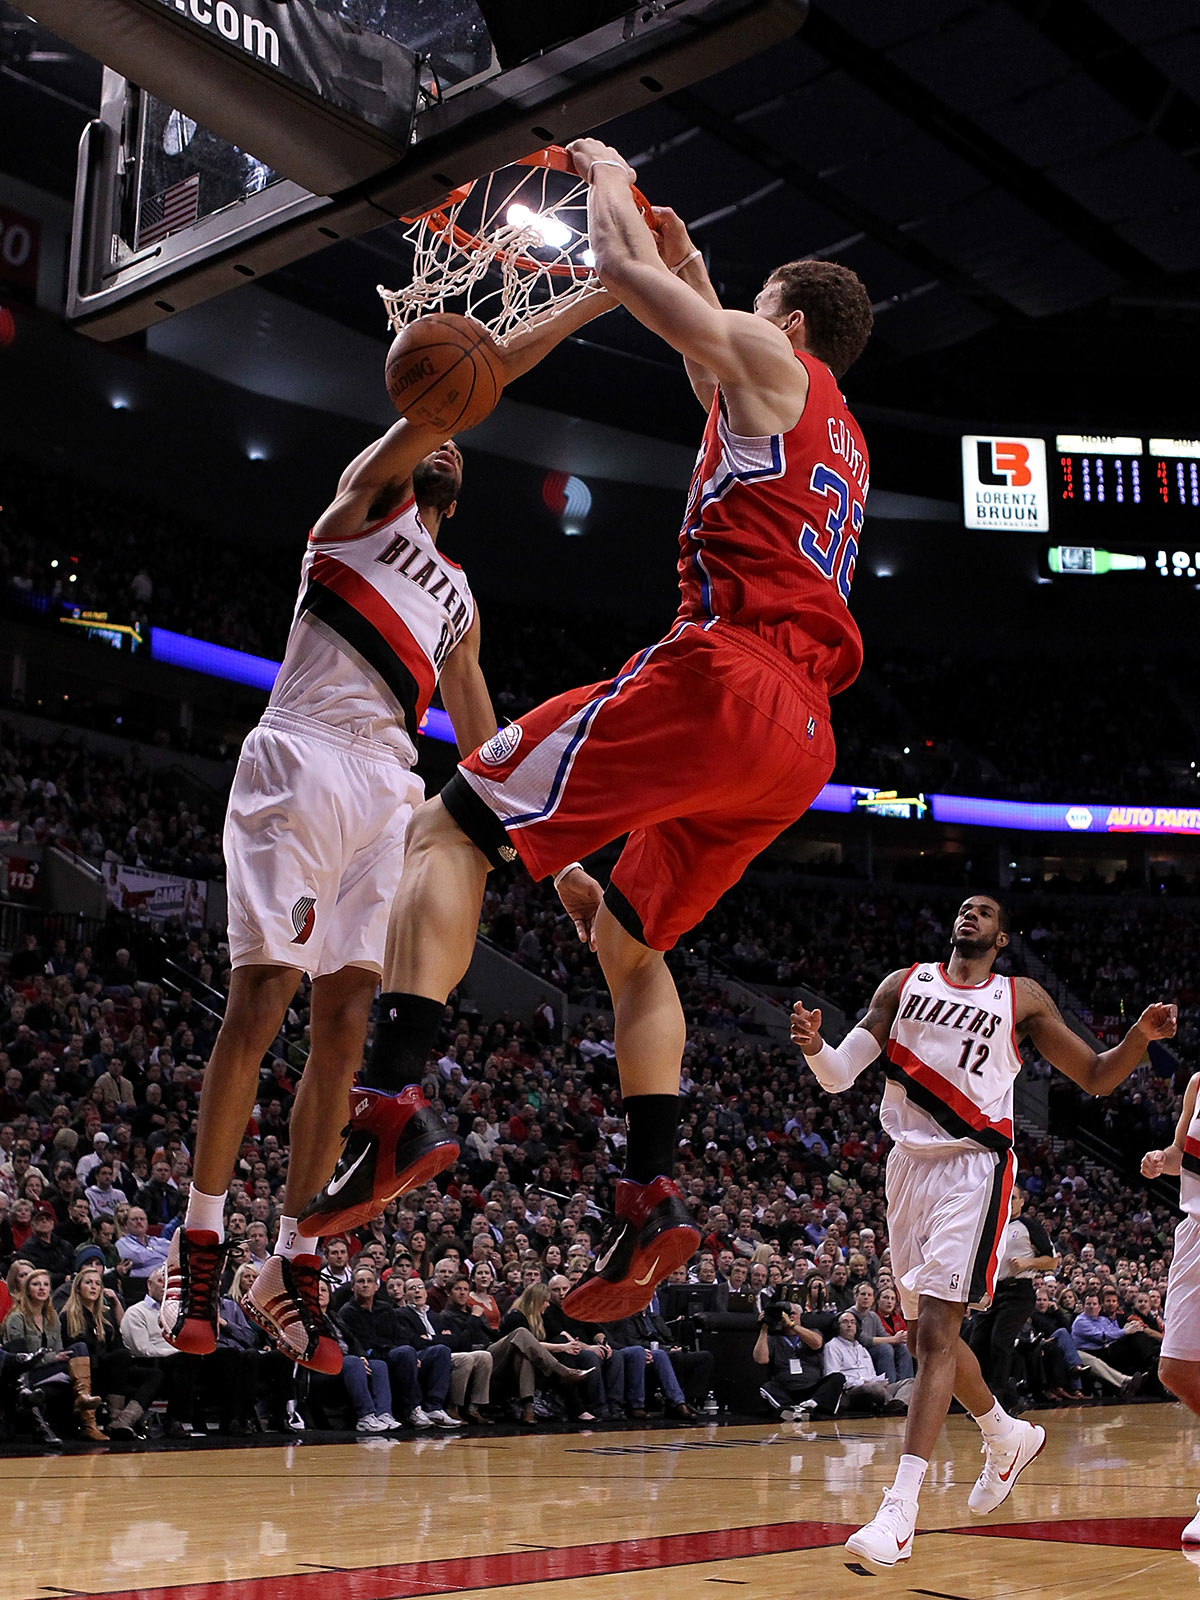 Clippers star Blake Griffin finishes a dunk with two hands over Nicolas Batum.